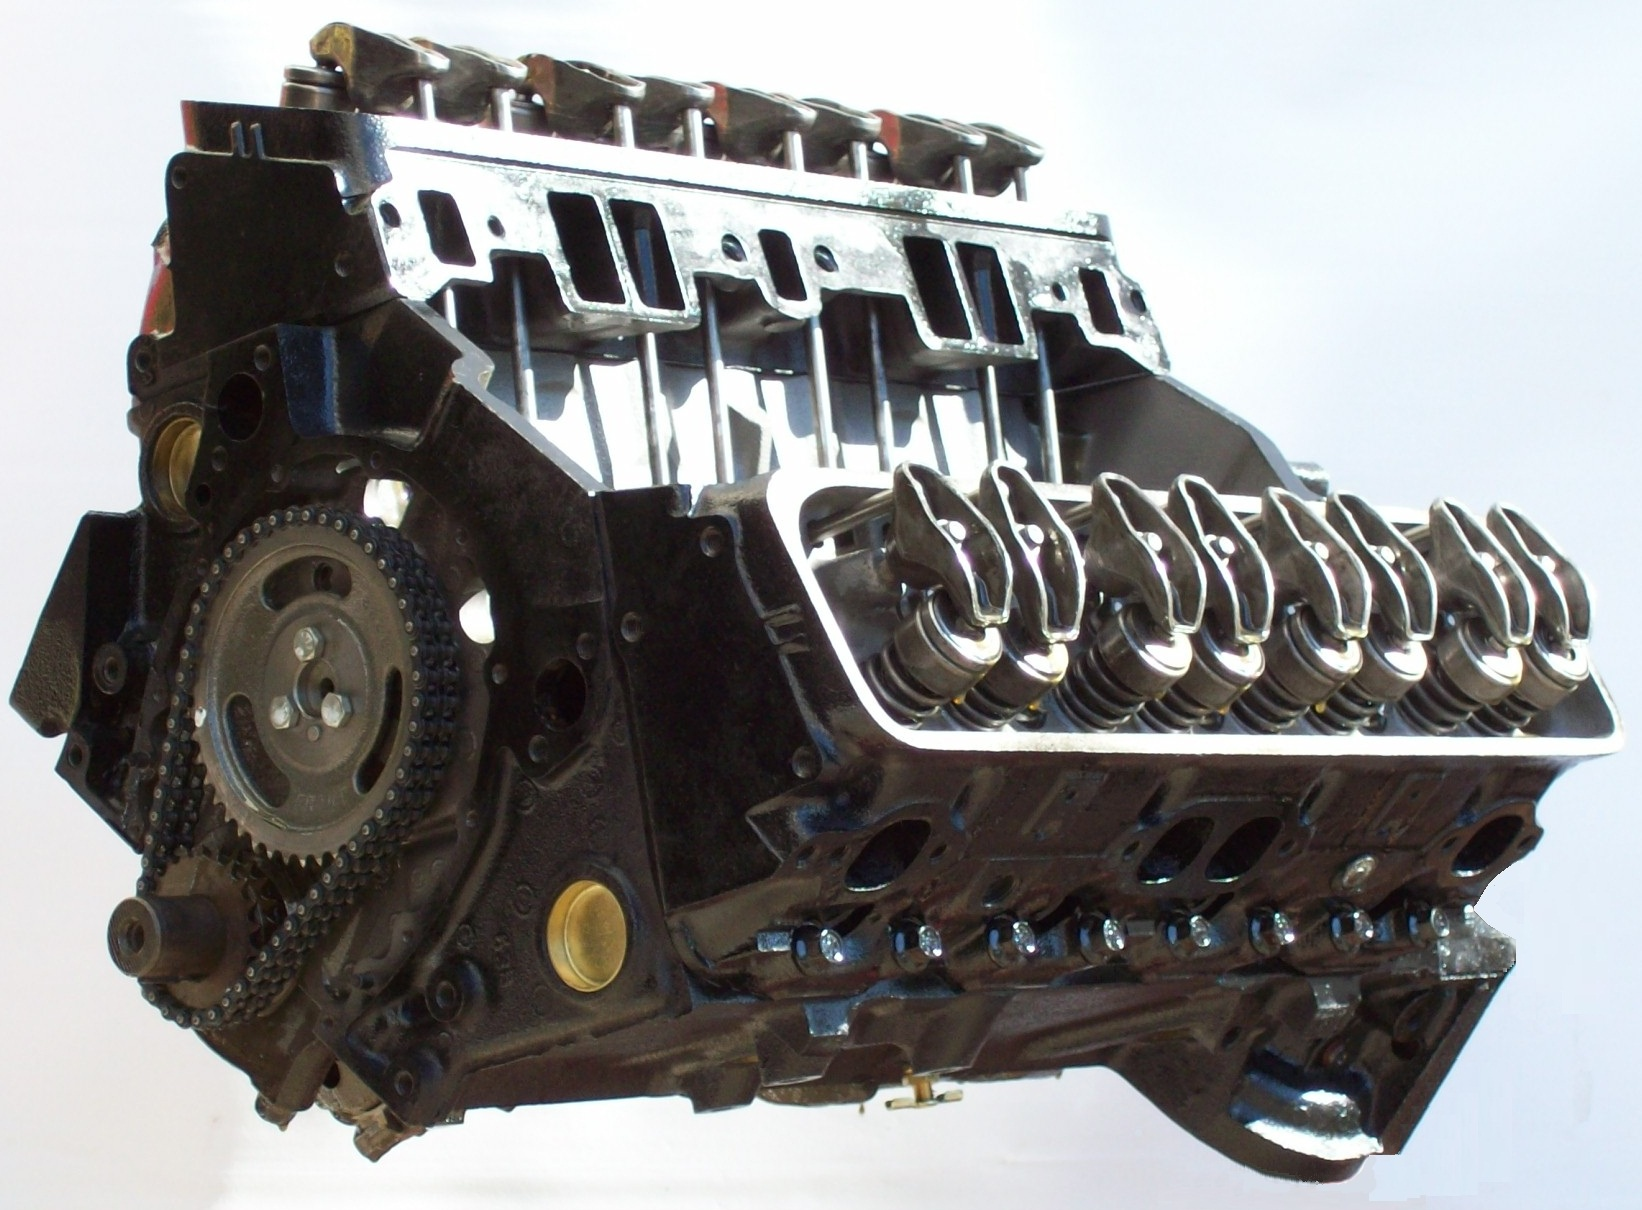 This remanufactured engine site has inboard longblock engines, turnkey